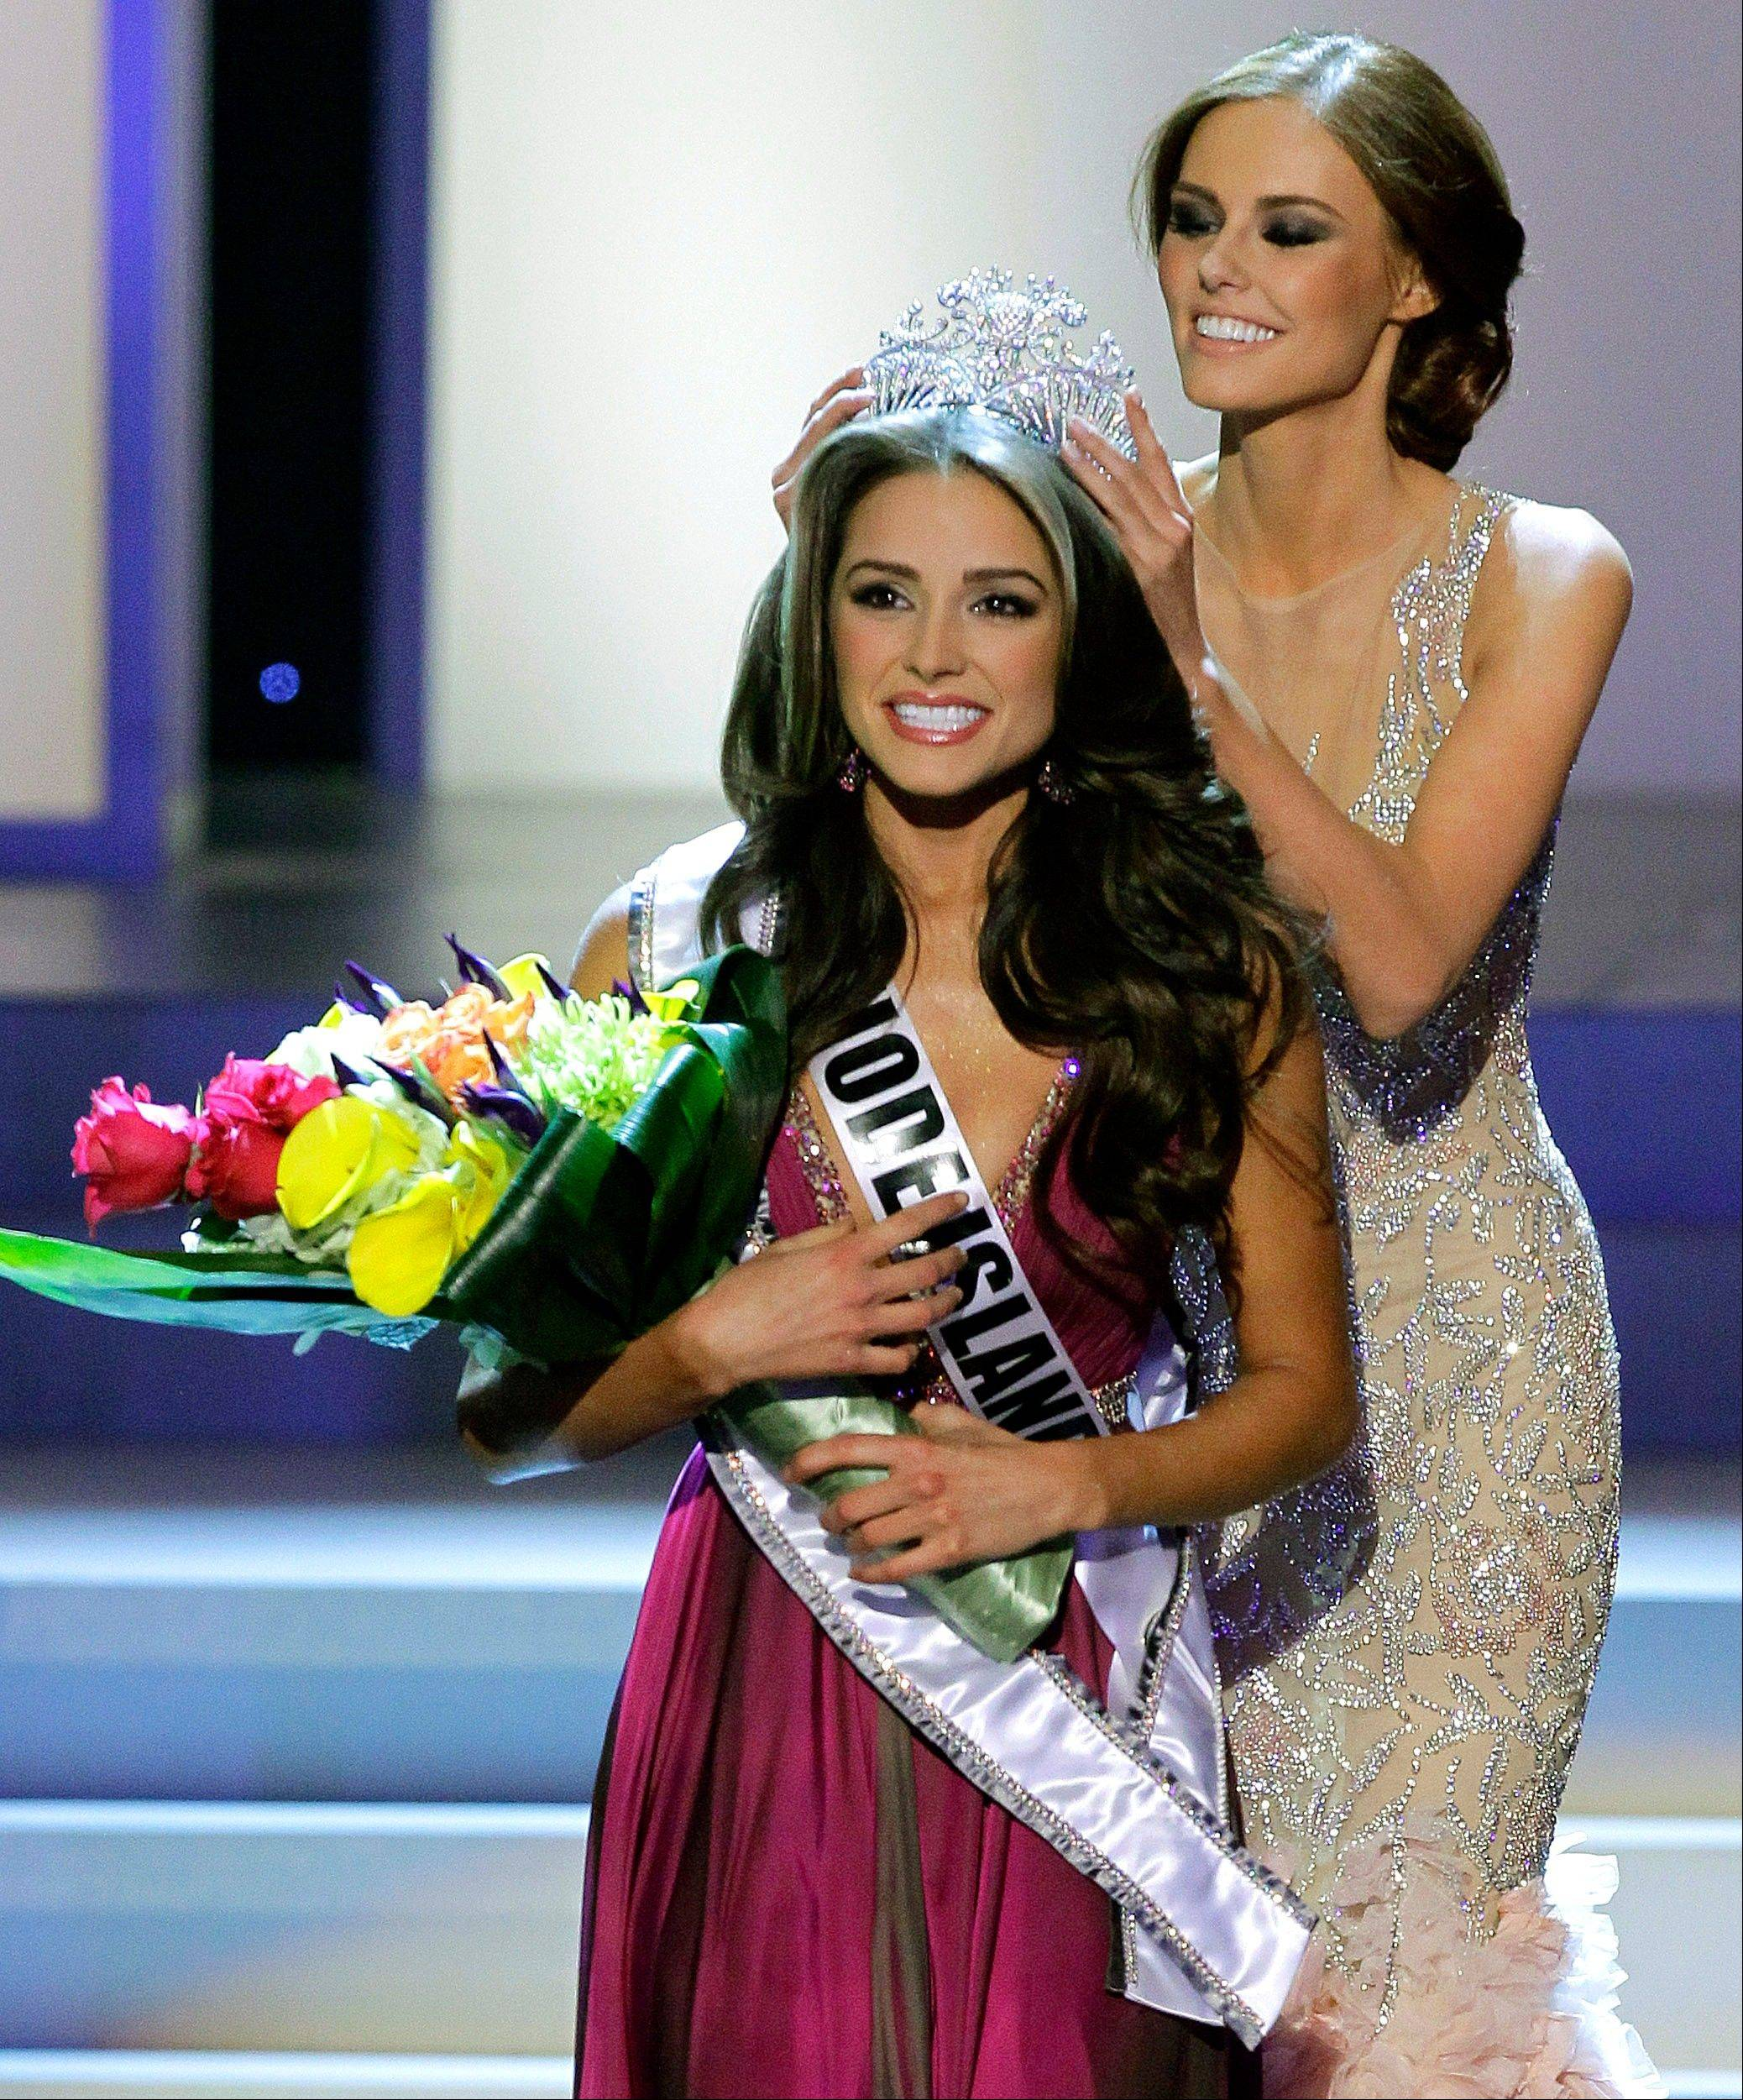 Miss Rhode Island Olivia Culpo is crowned Miss USA 2012 during the Miss USA pageant Sunday in Las Vegas.